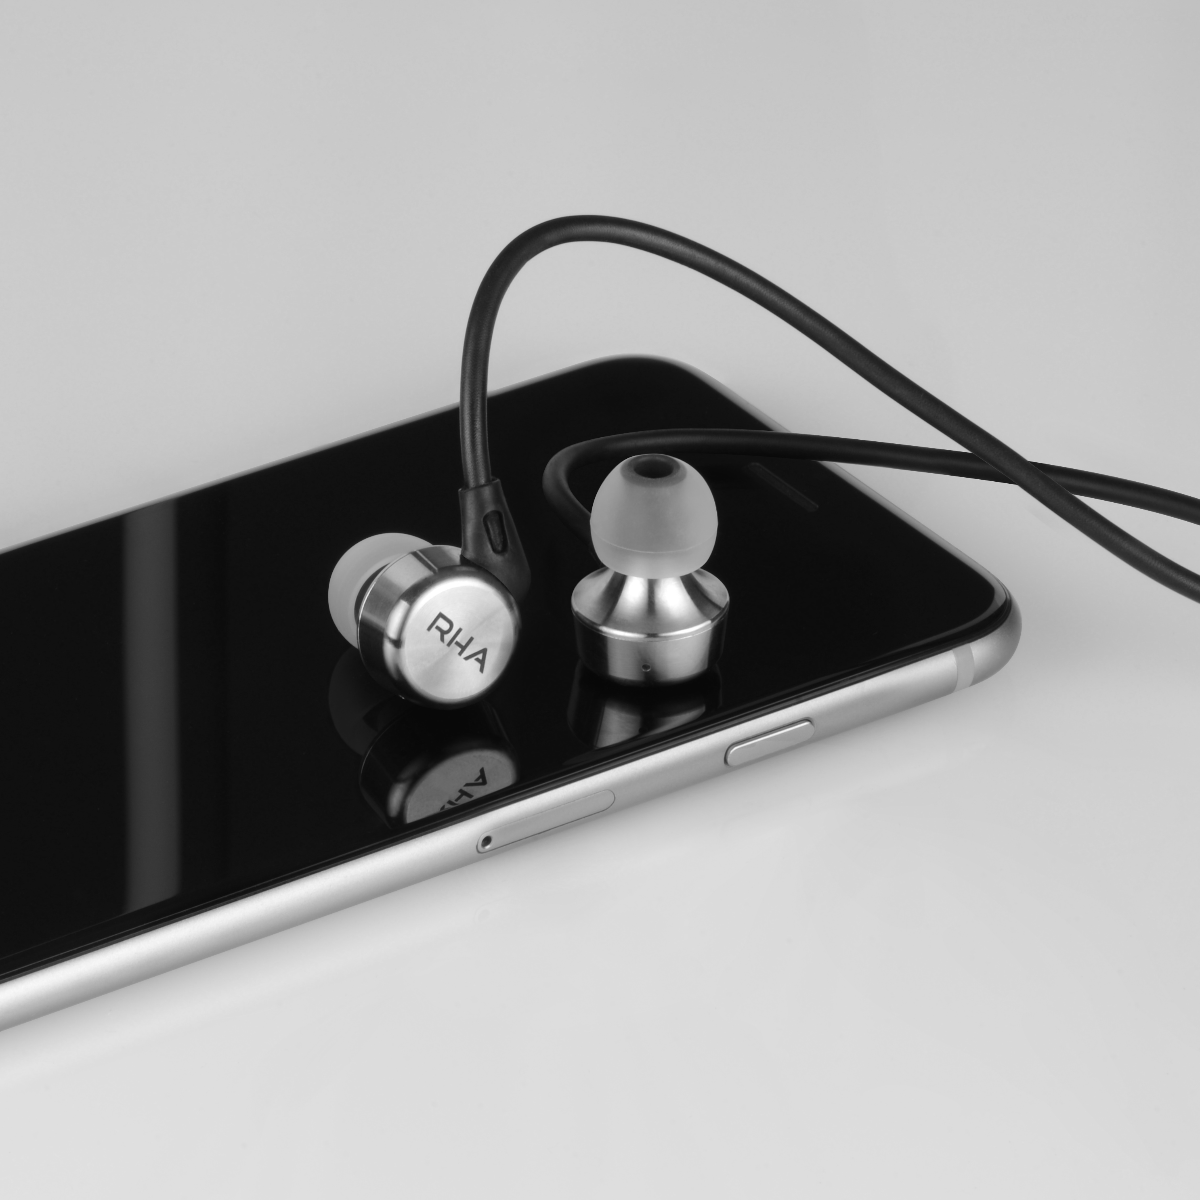 noise isolating premium earphones by RHA of Glasgow